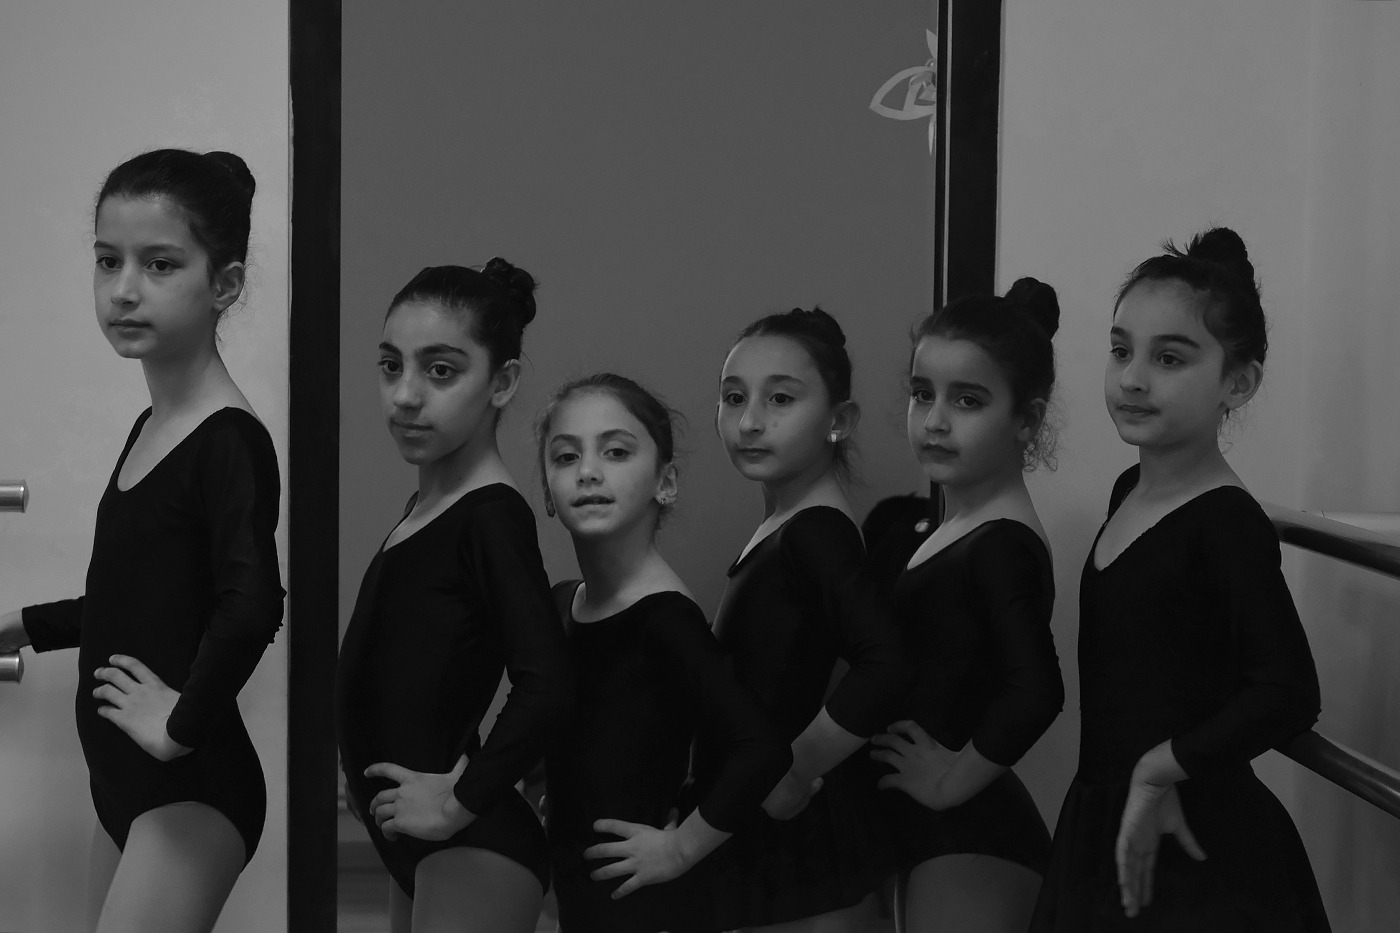 DSC 3367 - Photostory from Gyumri's Ballet School